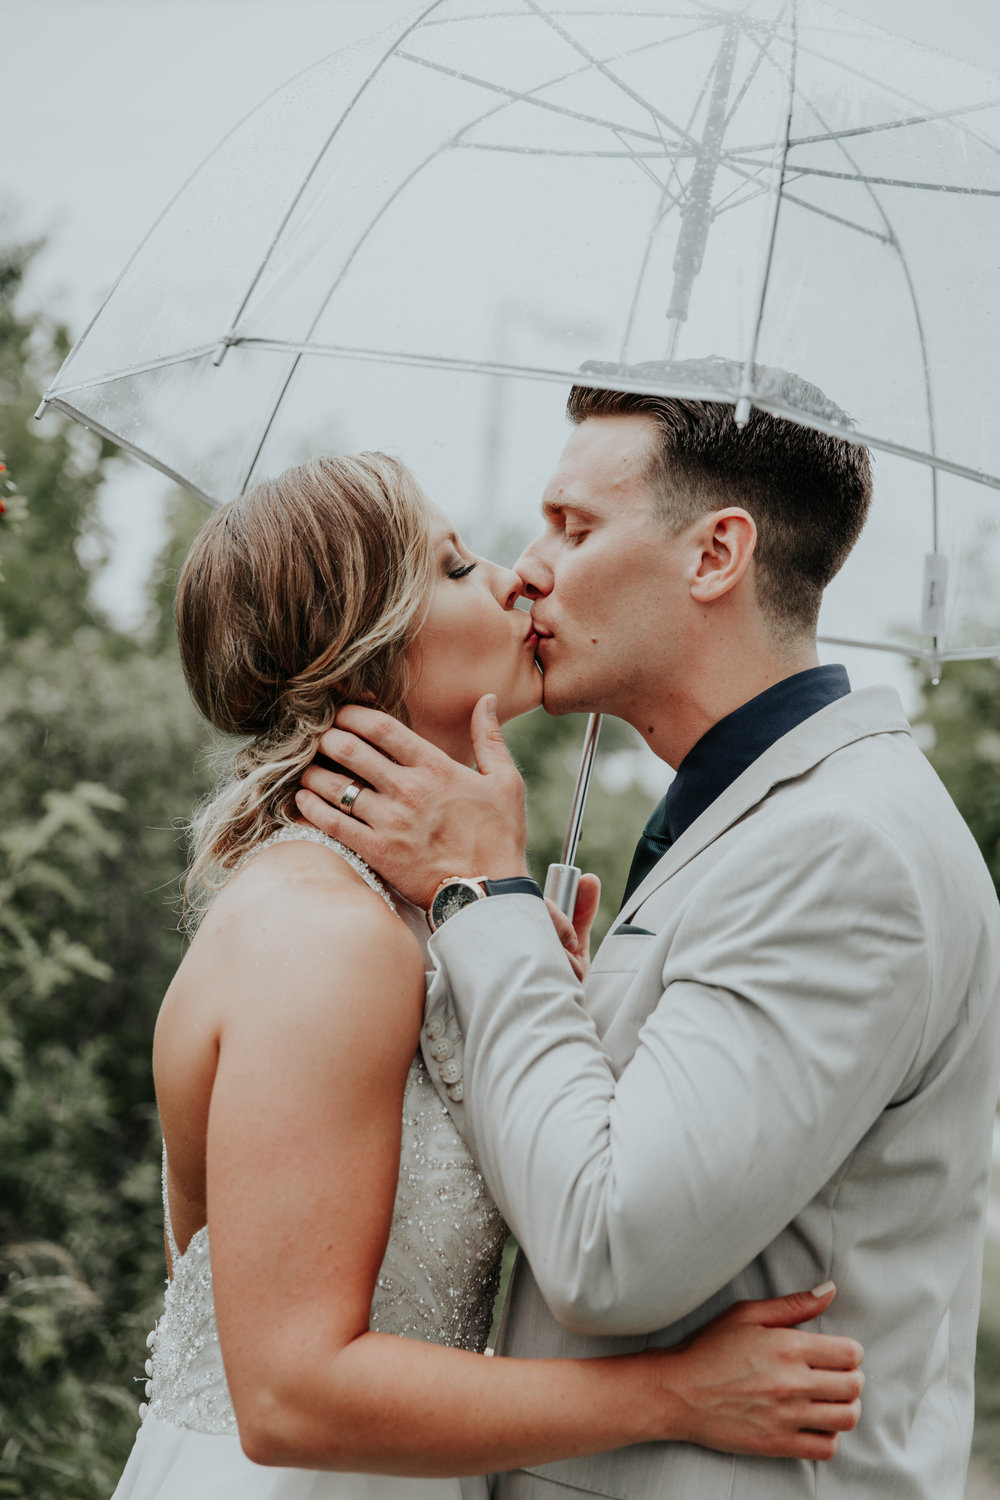 Modern, Rainy Wedding | Be Images